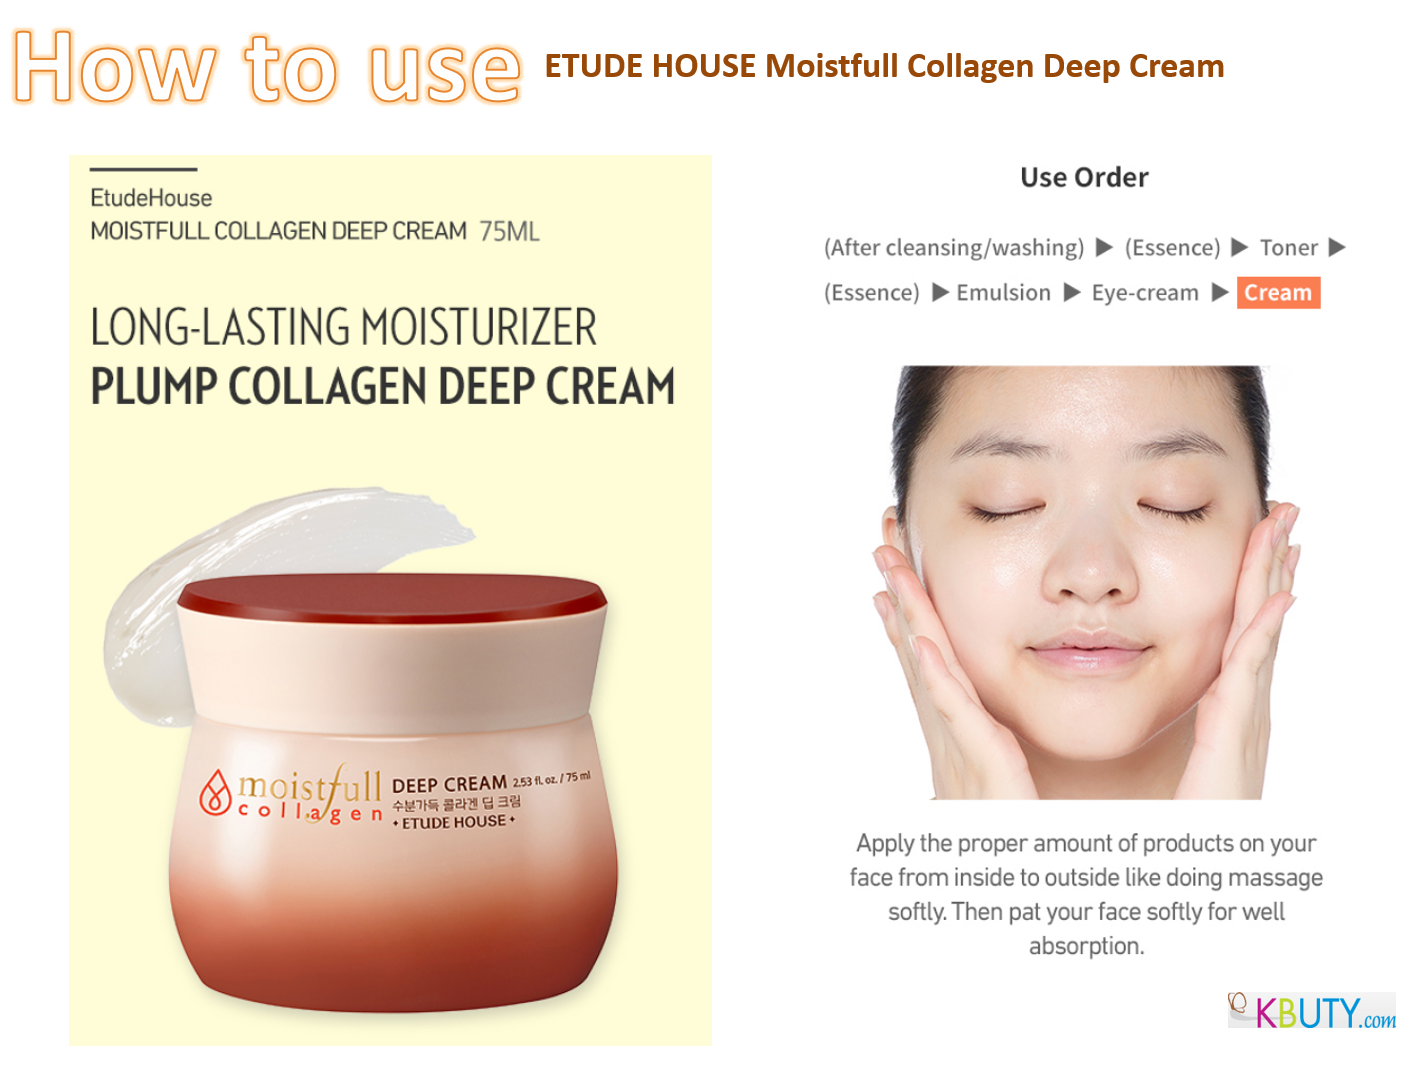 etude-house-moistfull-collagen-deep-cream-upload.png